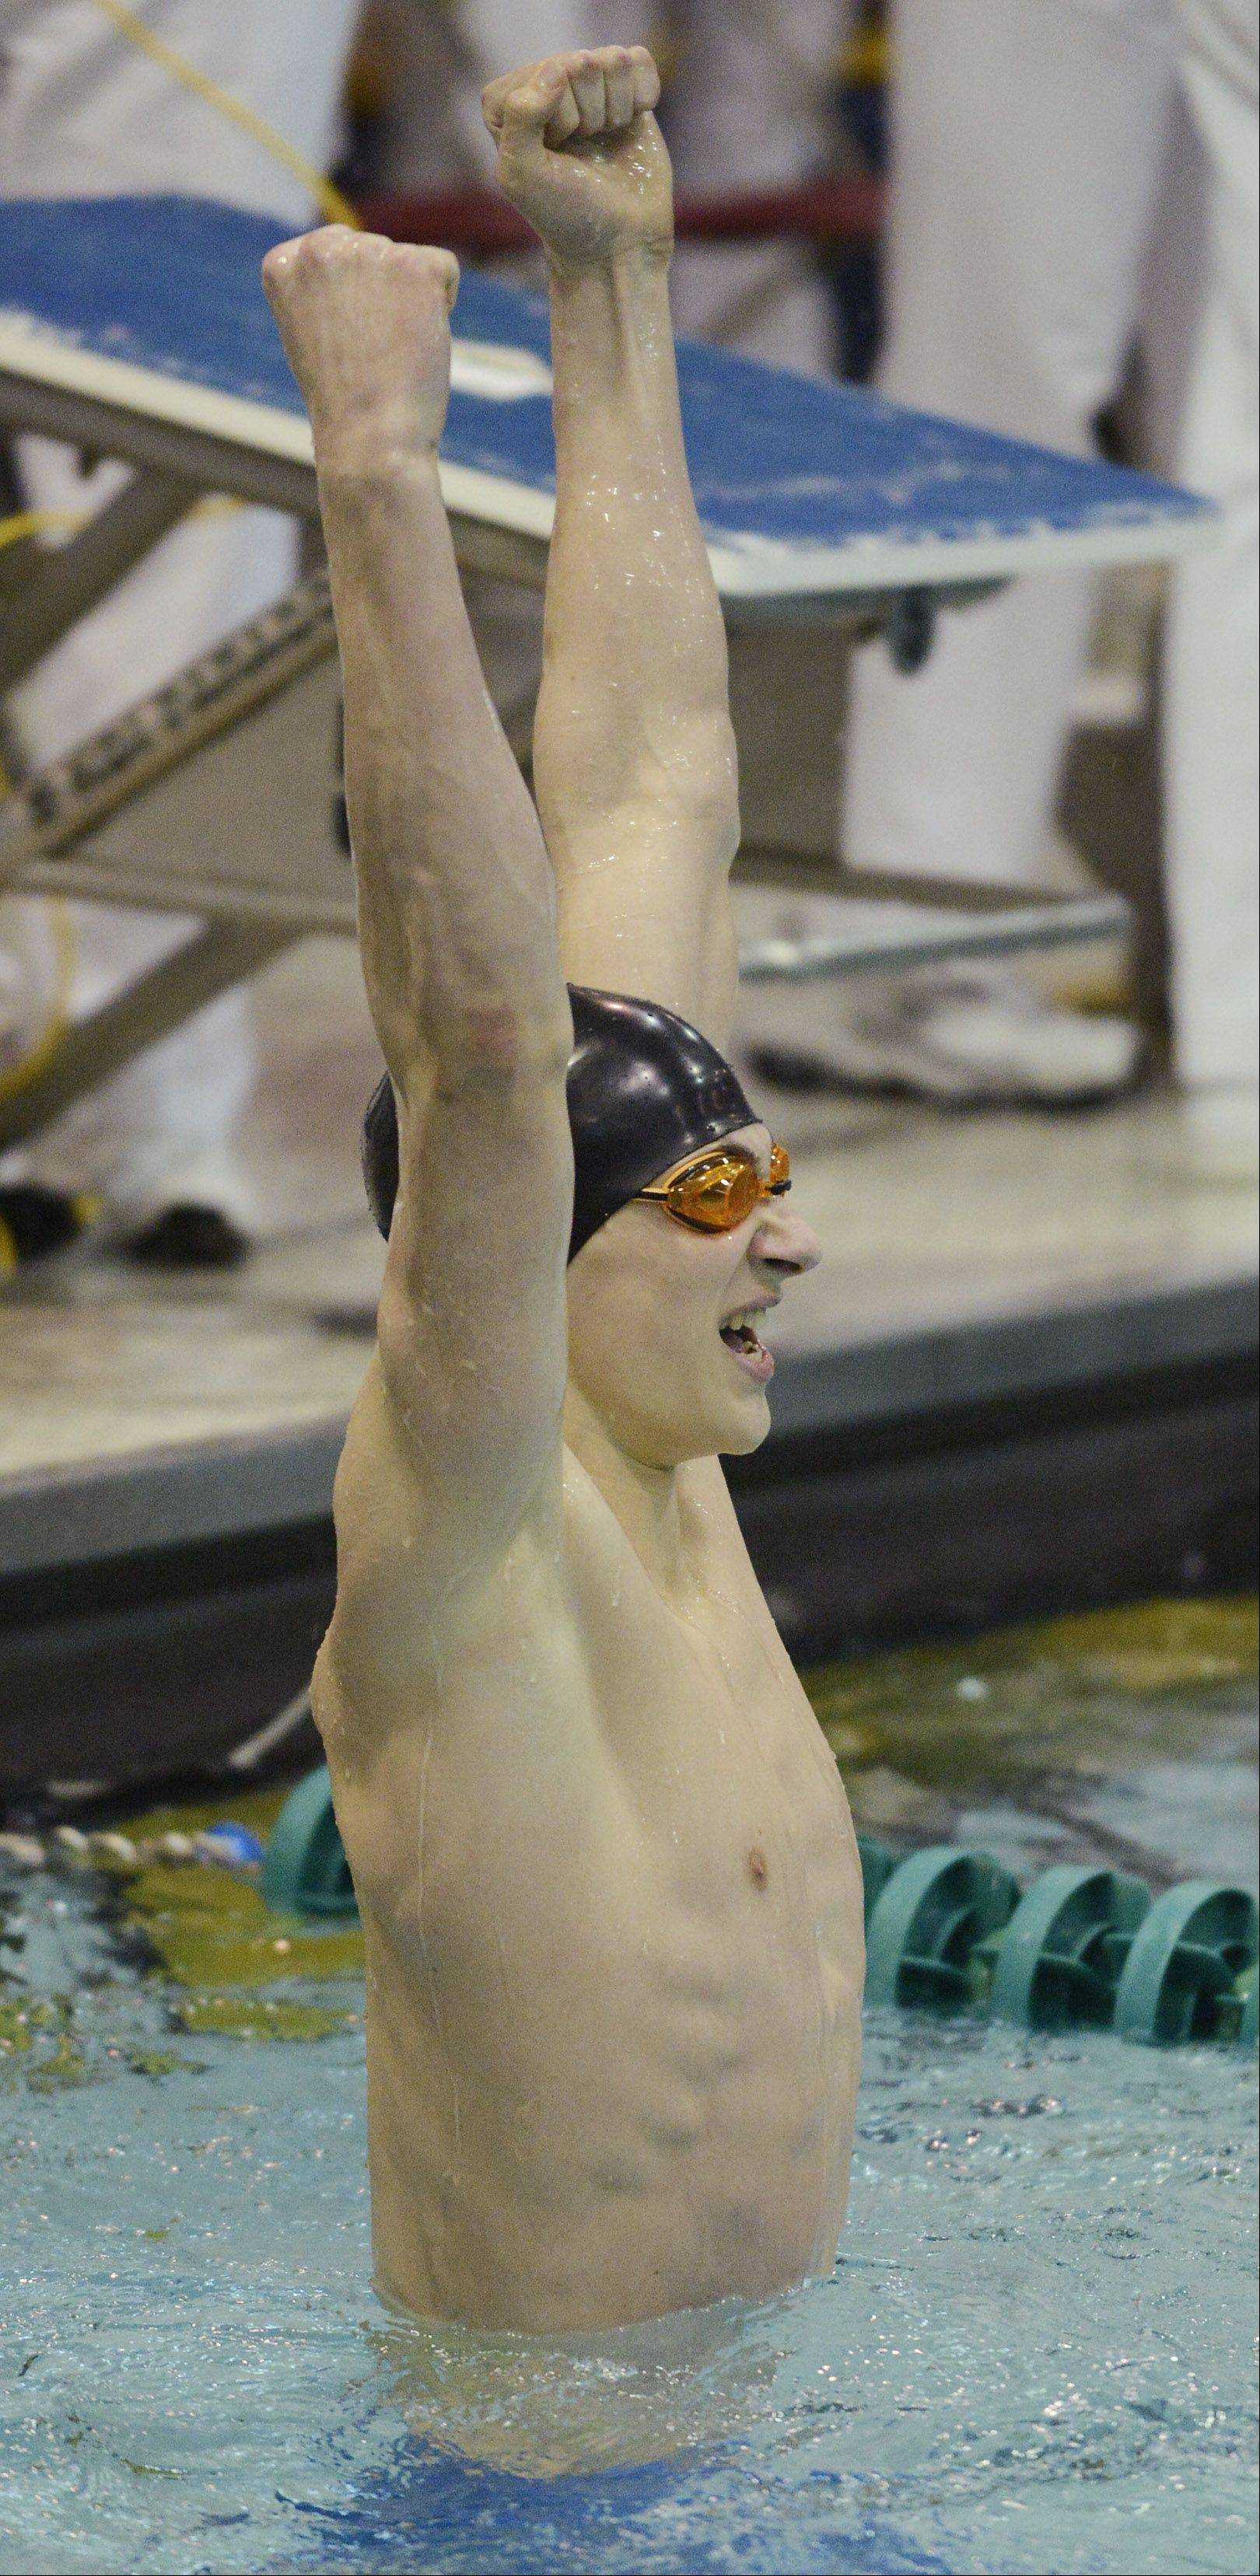 Mundelein�s Connor Black celebrates after setting a national record in the 100-yard butterfly of 46.71 in the boys swimming state finals at New Trier High School in Winnetka on Saturday.